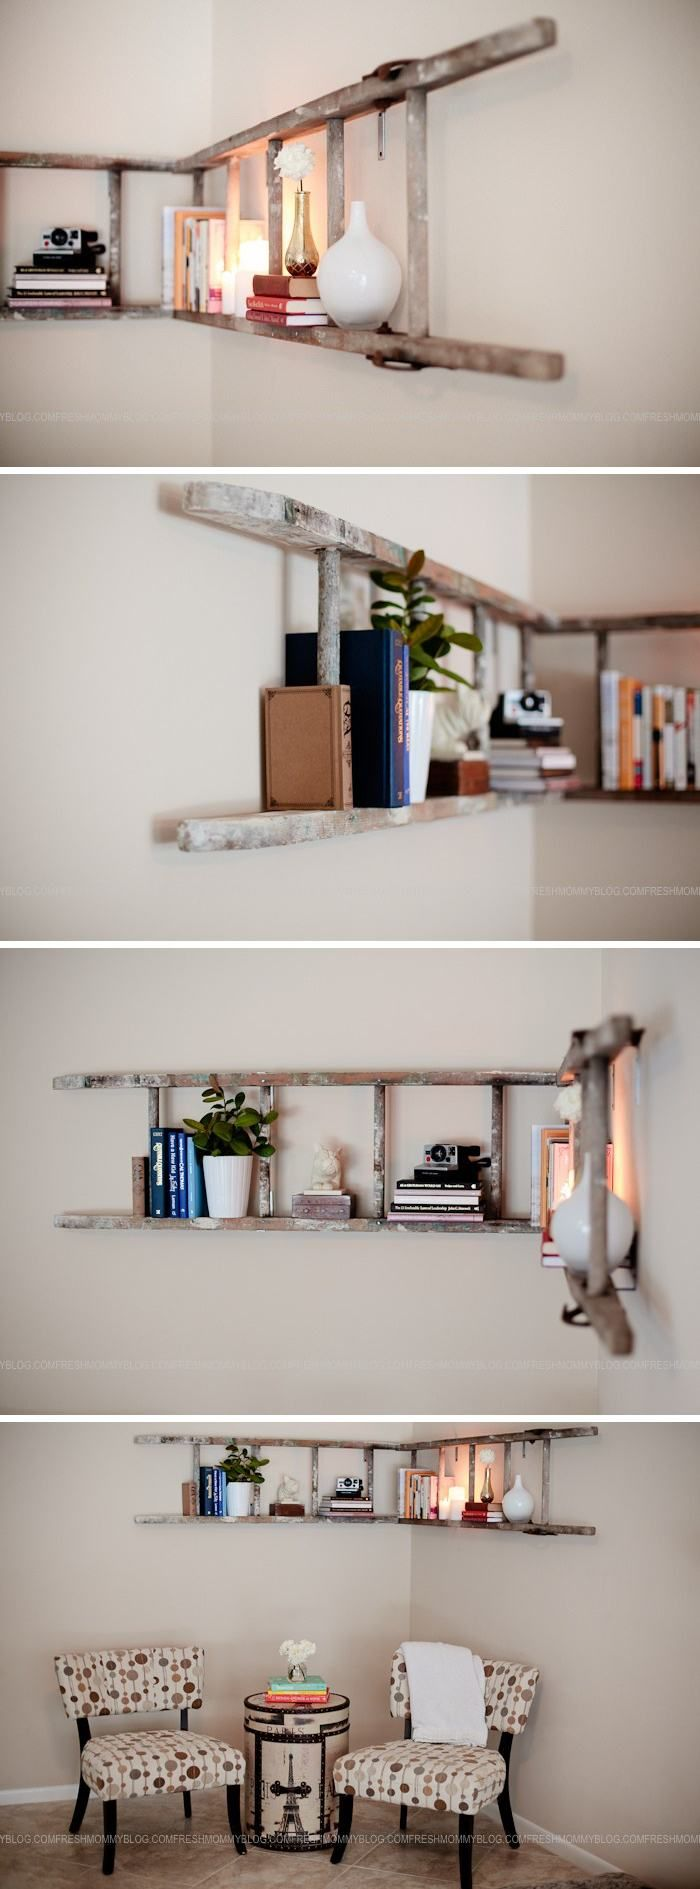 DIY Corner Ladder Bookshelf / This easy and clever bookshelf look so much cooler than anything you can buy from a store.